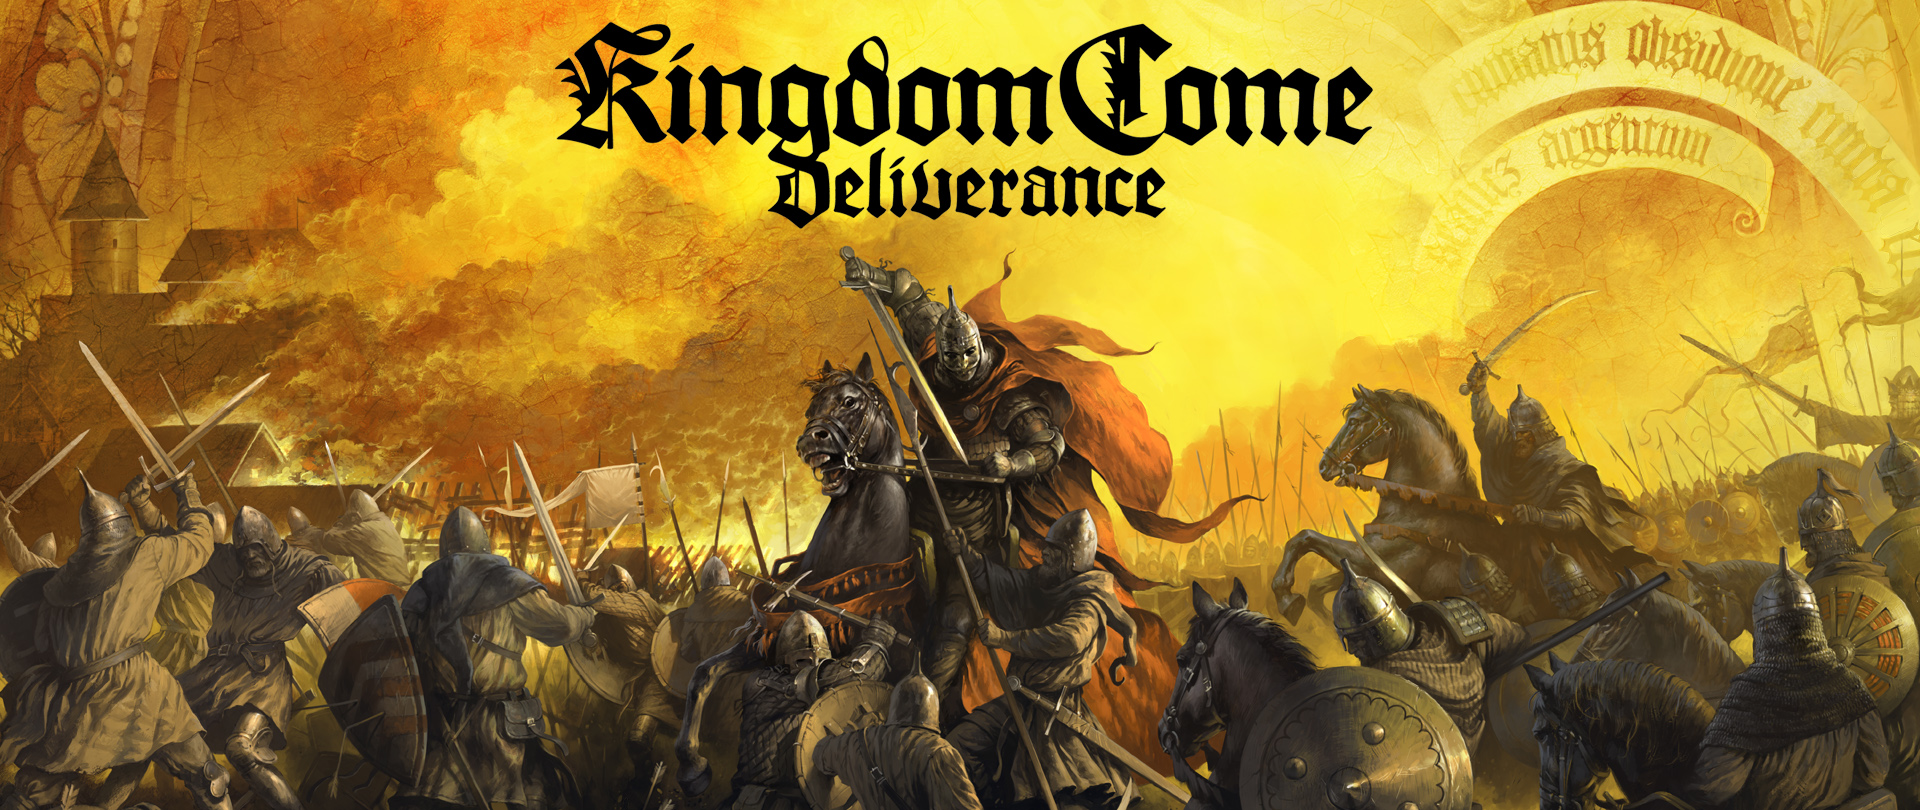 Kingdom Come Deliverance HD Wallpapers and Background Images 1920x810